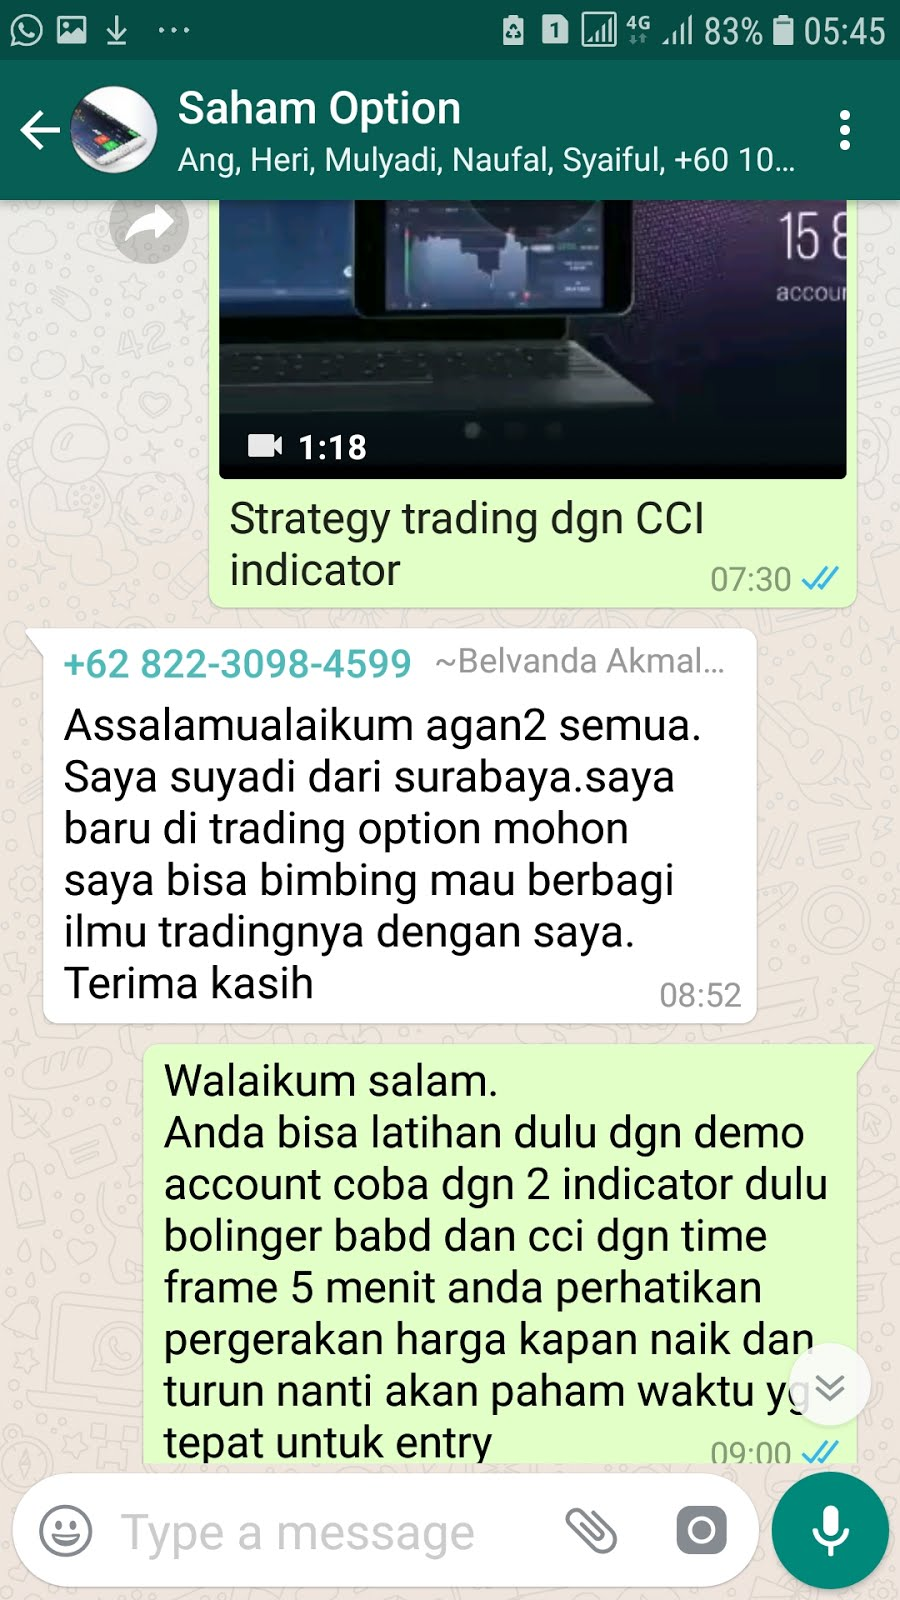 Gabung Groups WA Saham Option